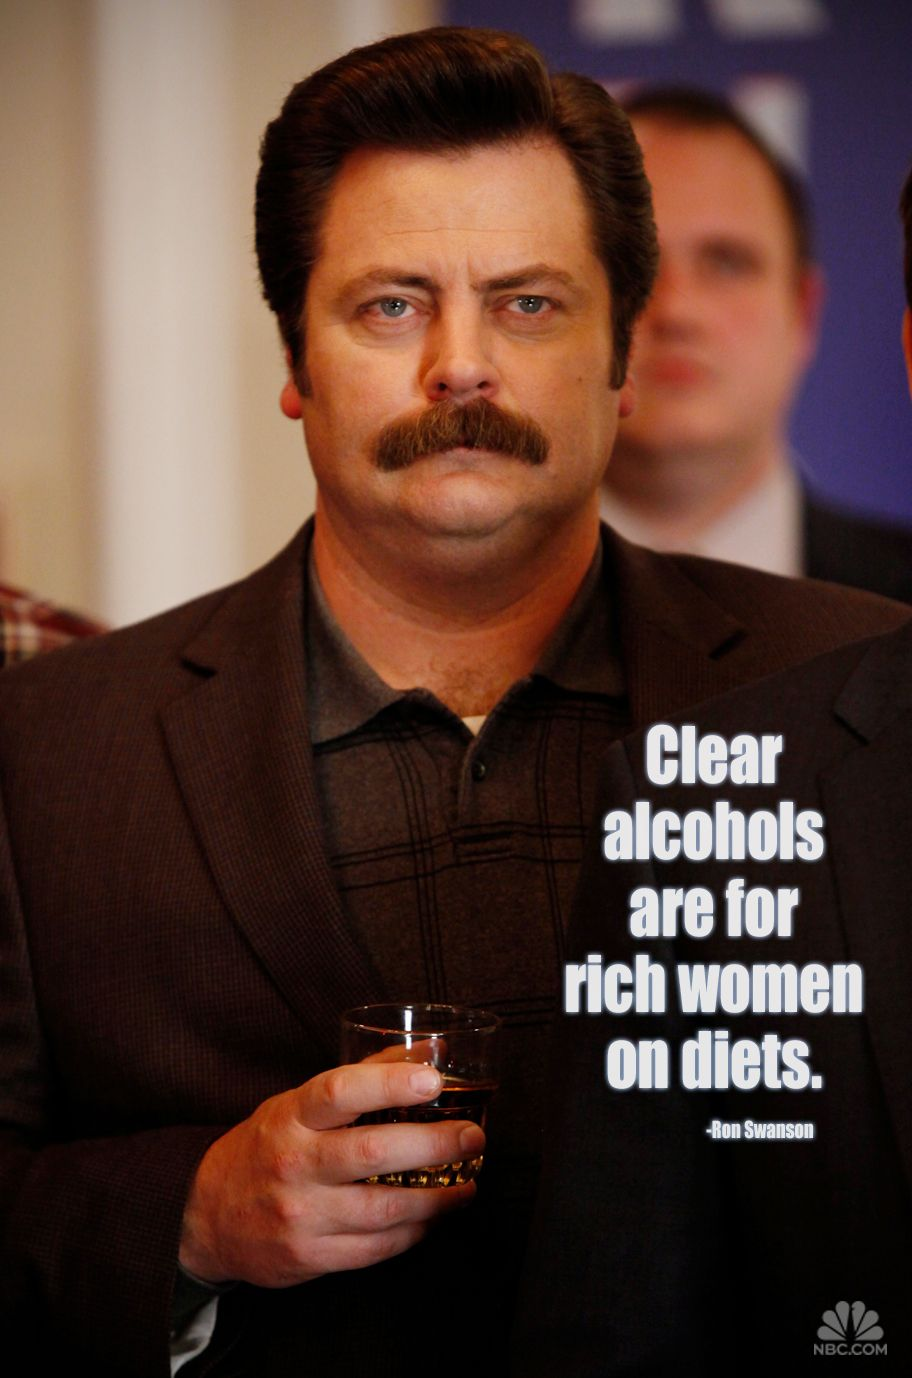 Ron swanson clear alcohol